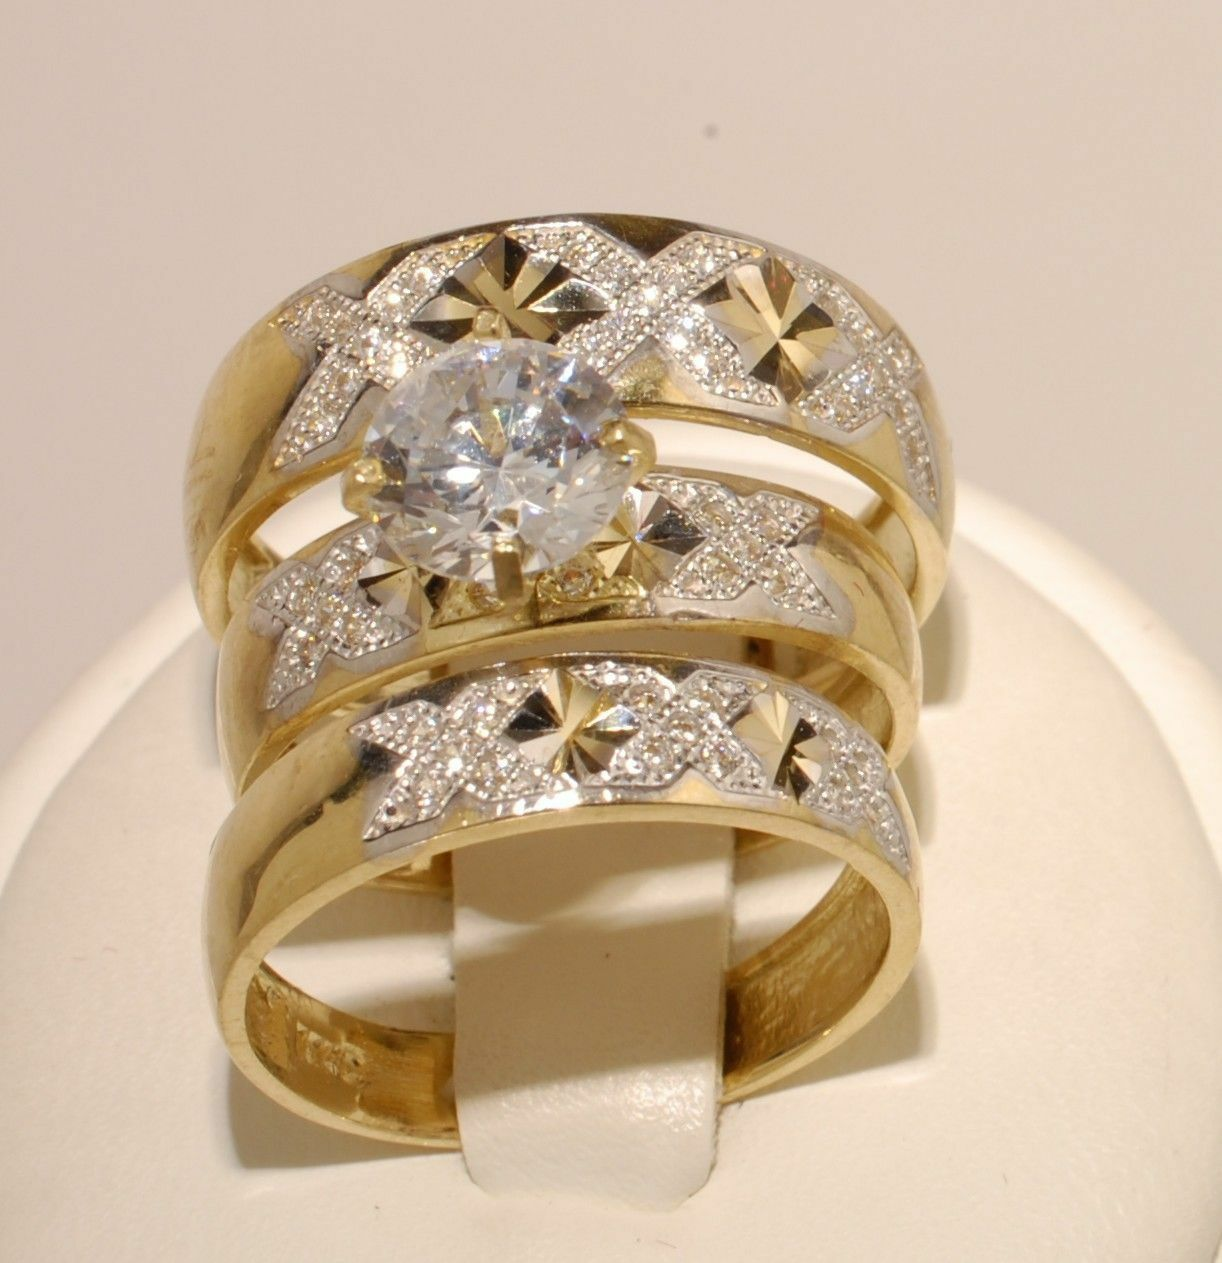 2Ct Round Cut Diamond 14K Yellow gold Over His-Her Trio Wedding Ring Set